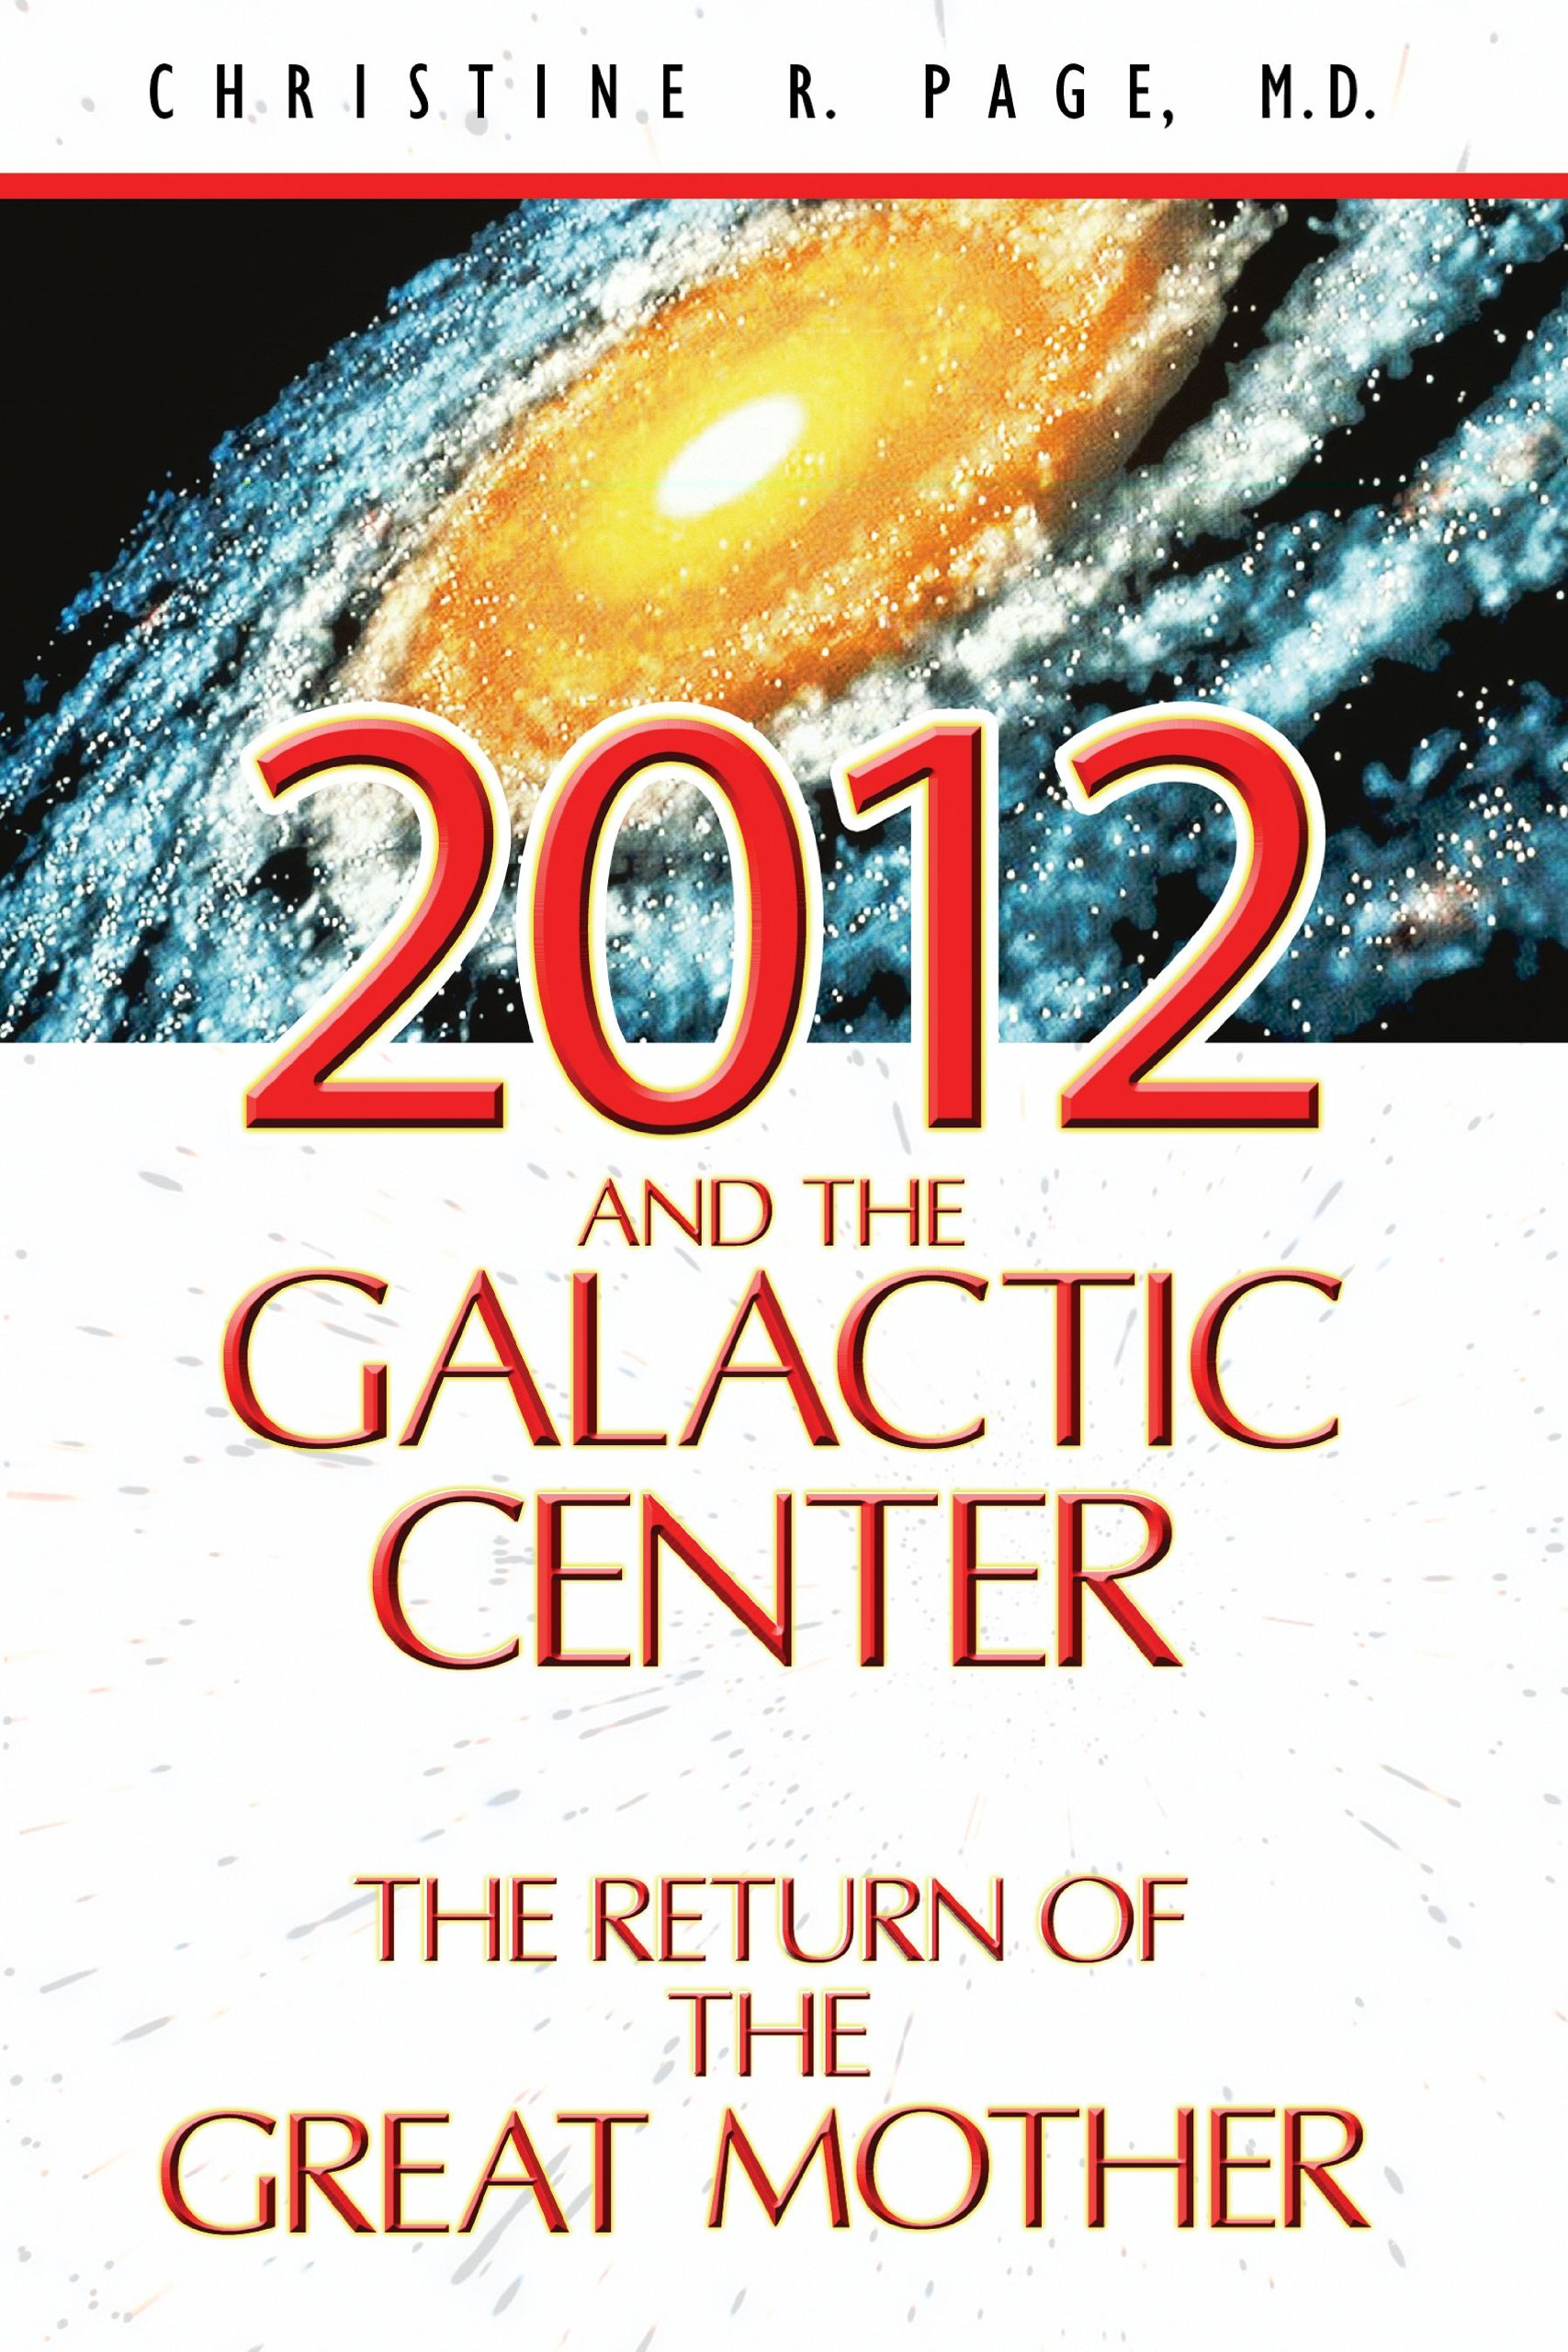 2012 and the galactic center the return of the great mother 2012 and the galactic center the return of the great mother christine r page md 9781591430865 amazon books geenschuldenfo Images